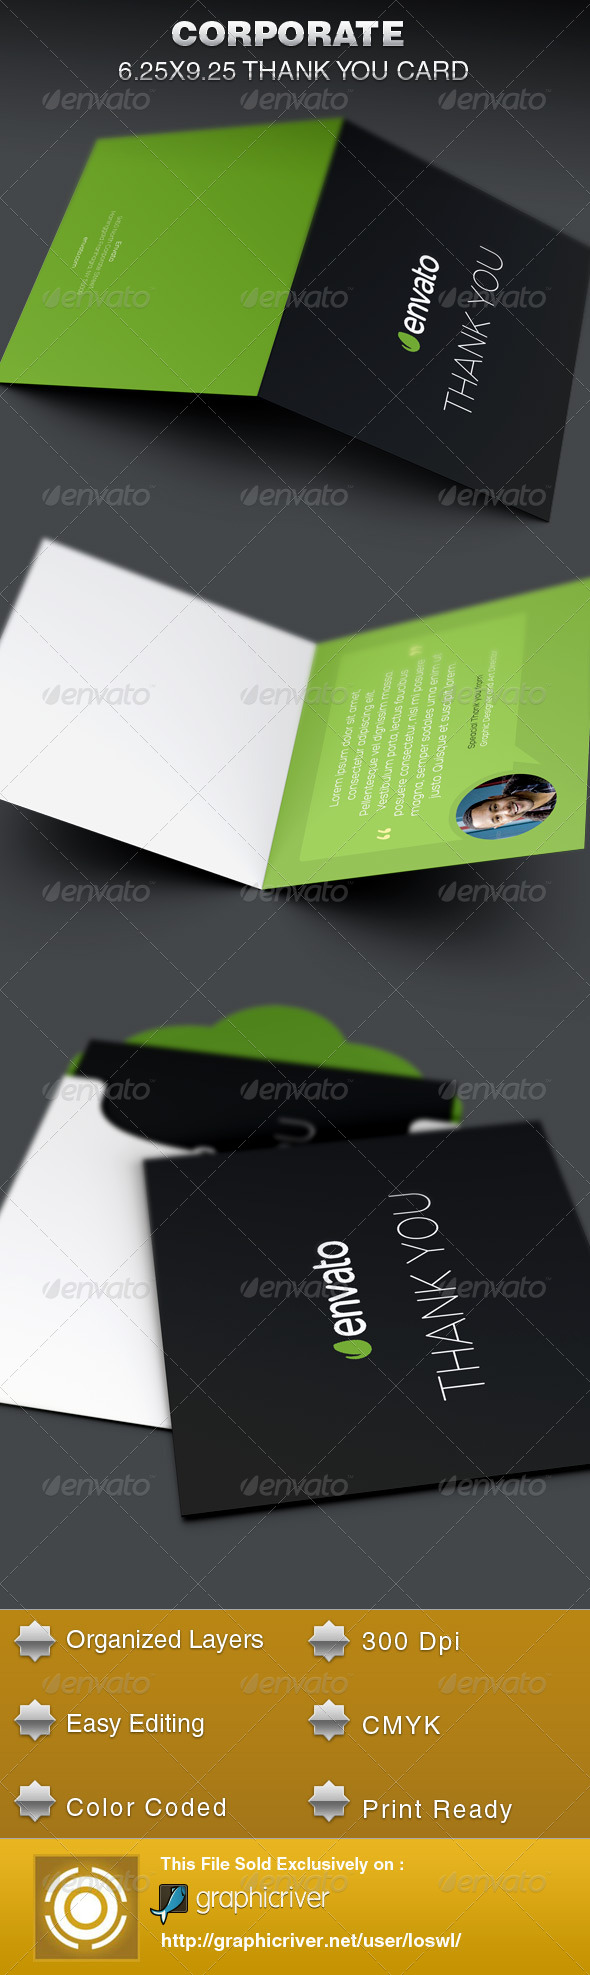 GraphicRiver Corporate Thank You Card Template 6255448